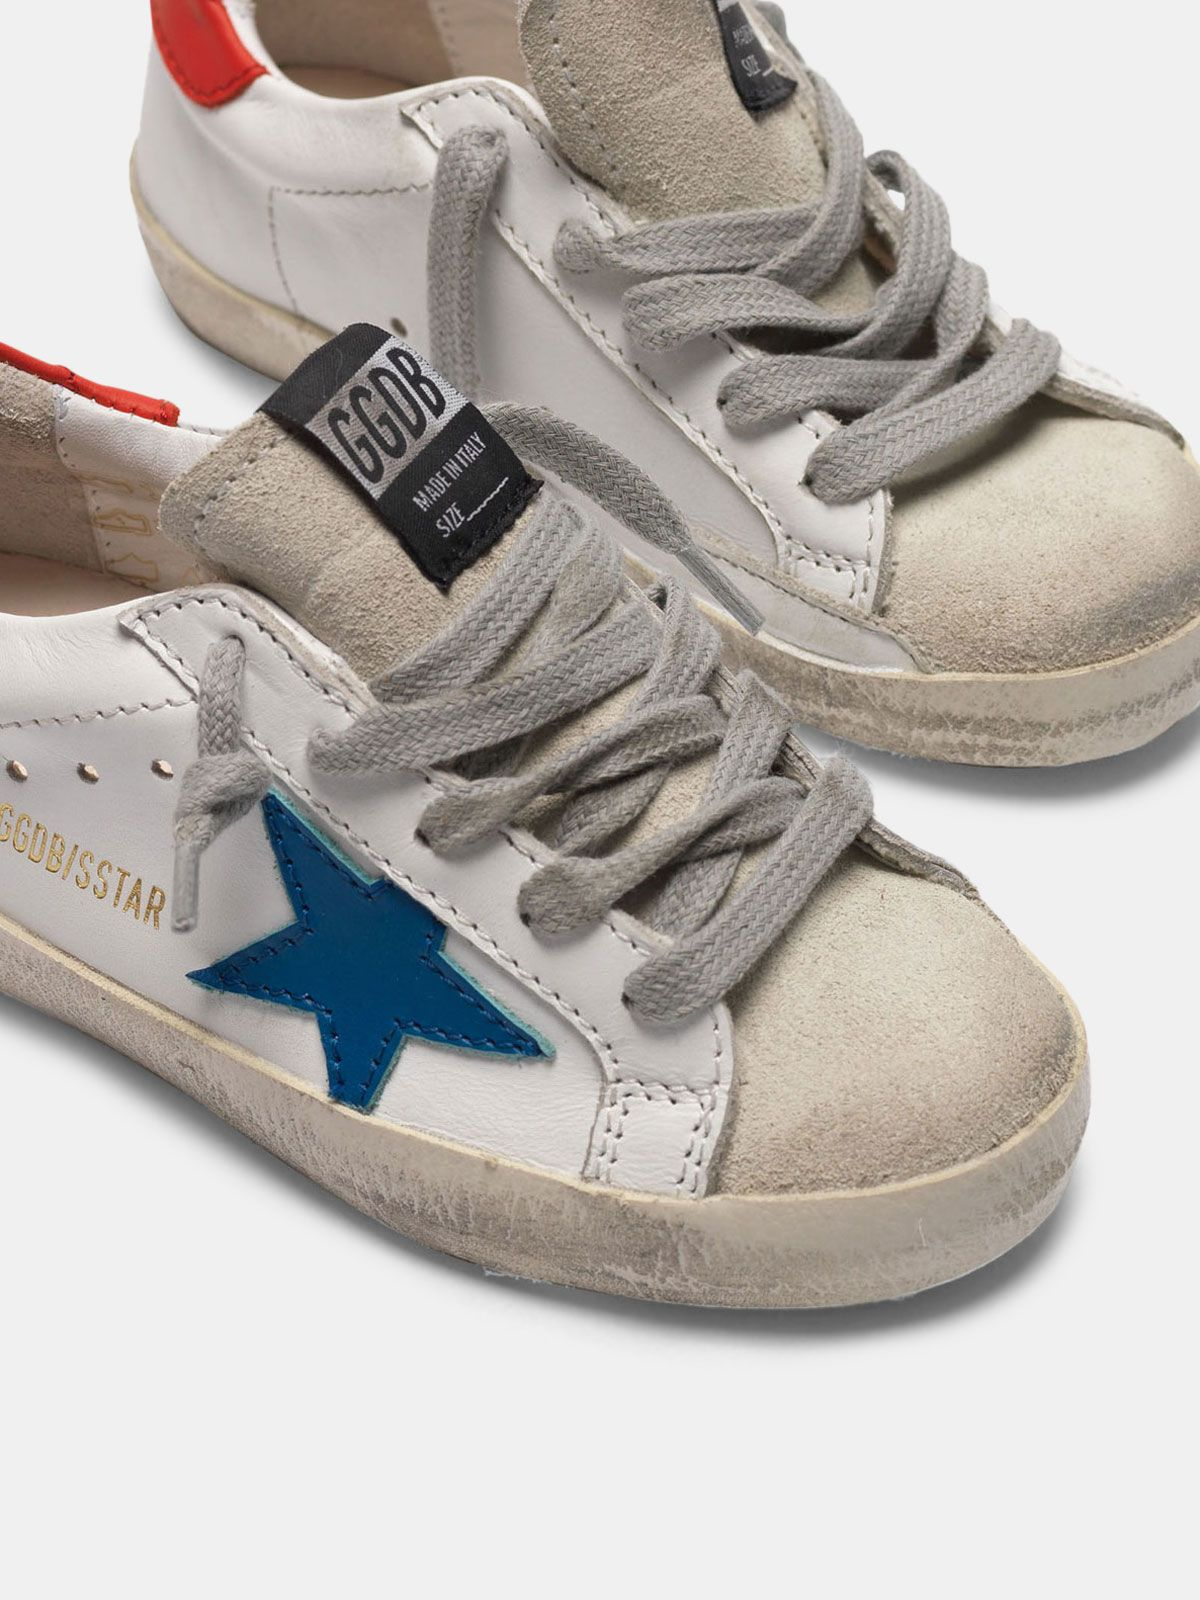 Golden Goose - Sneakers Super-Star con stella blu e talloncino rosso in